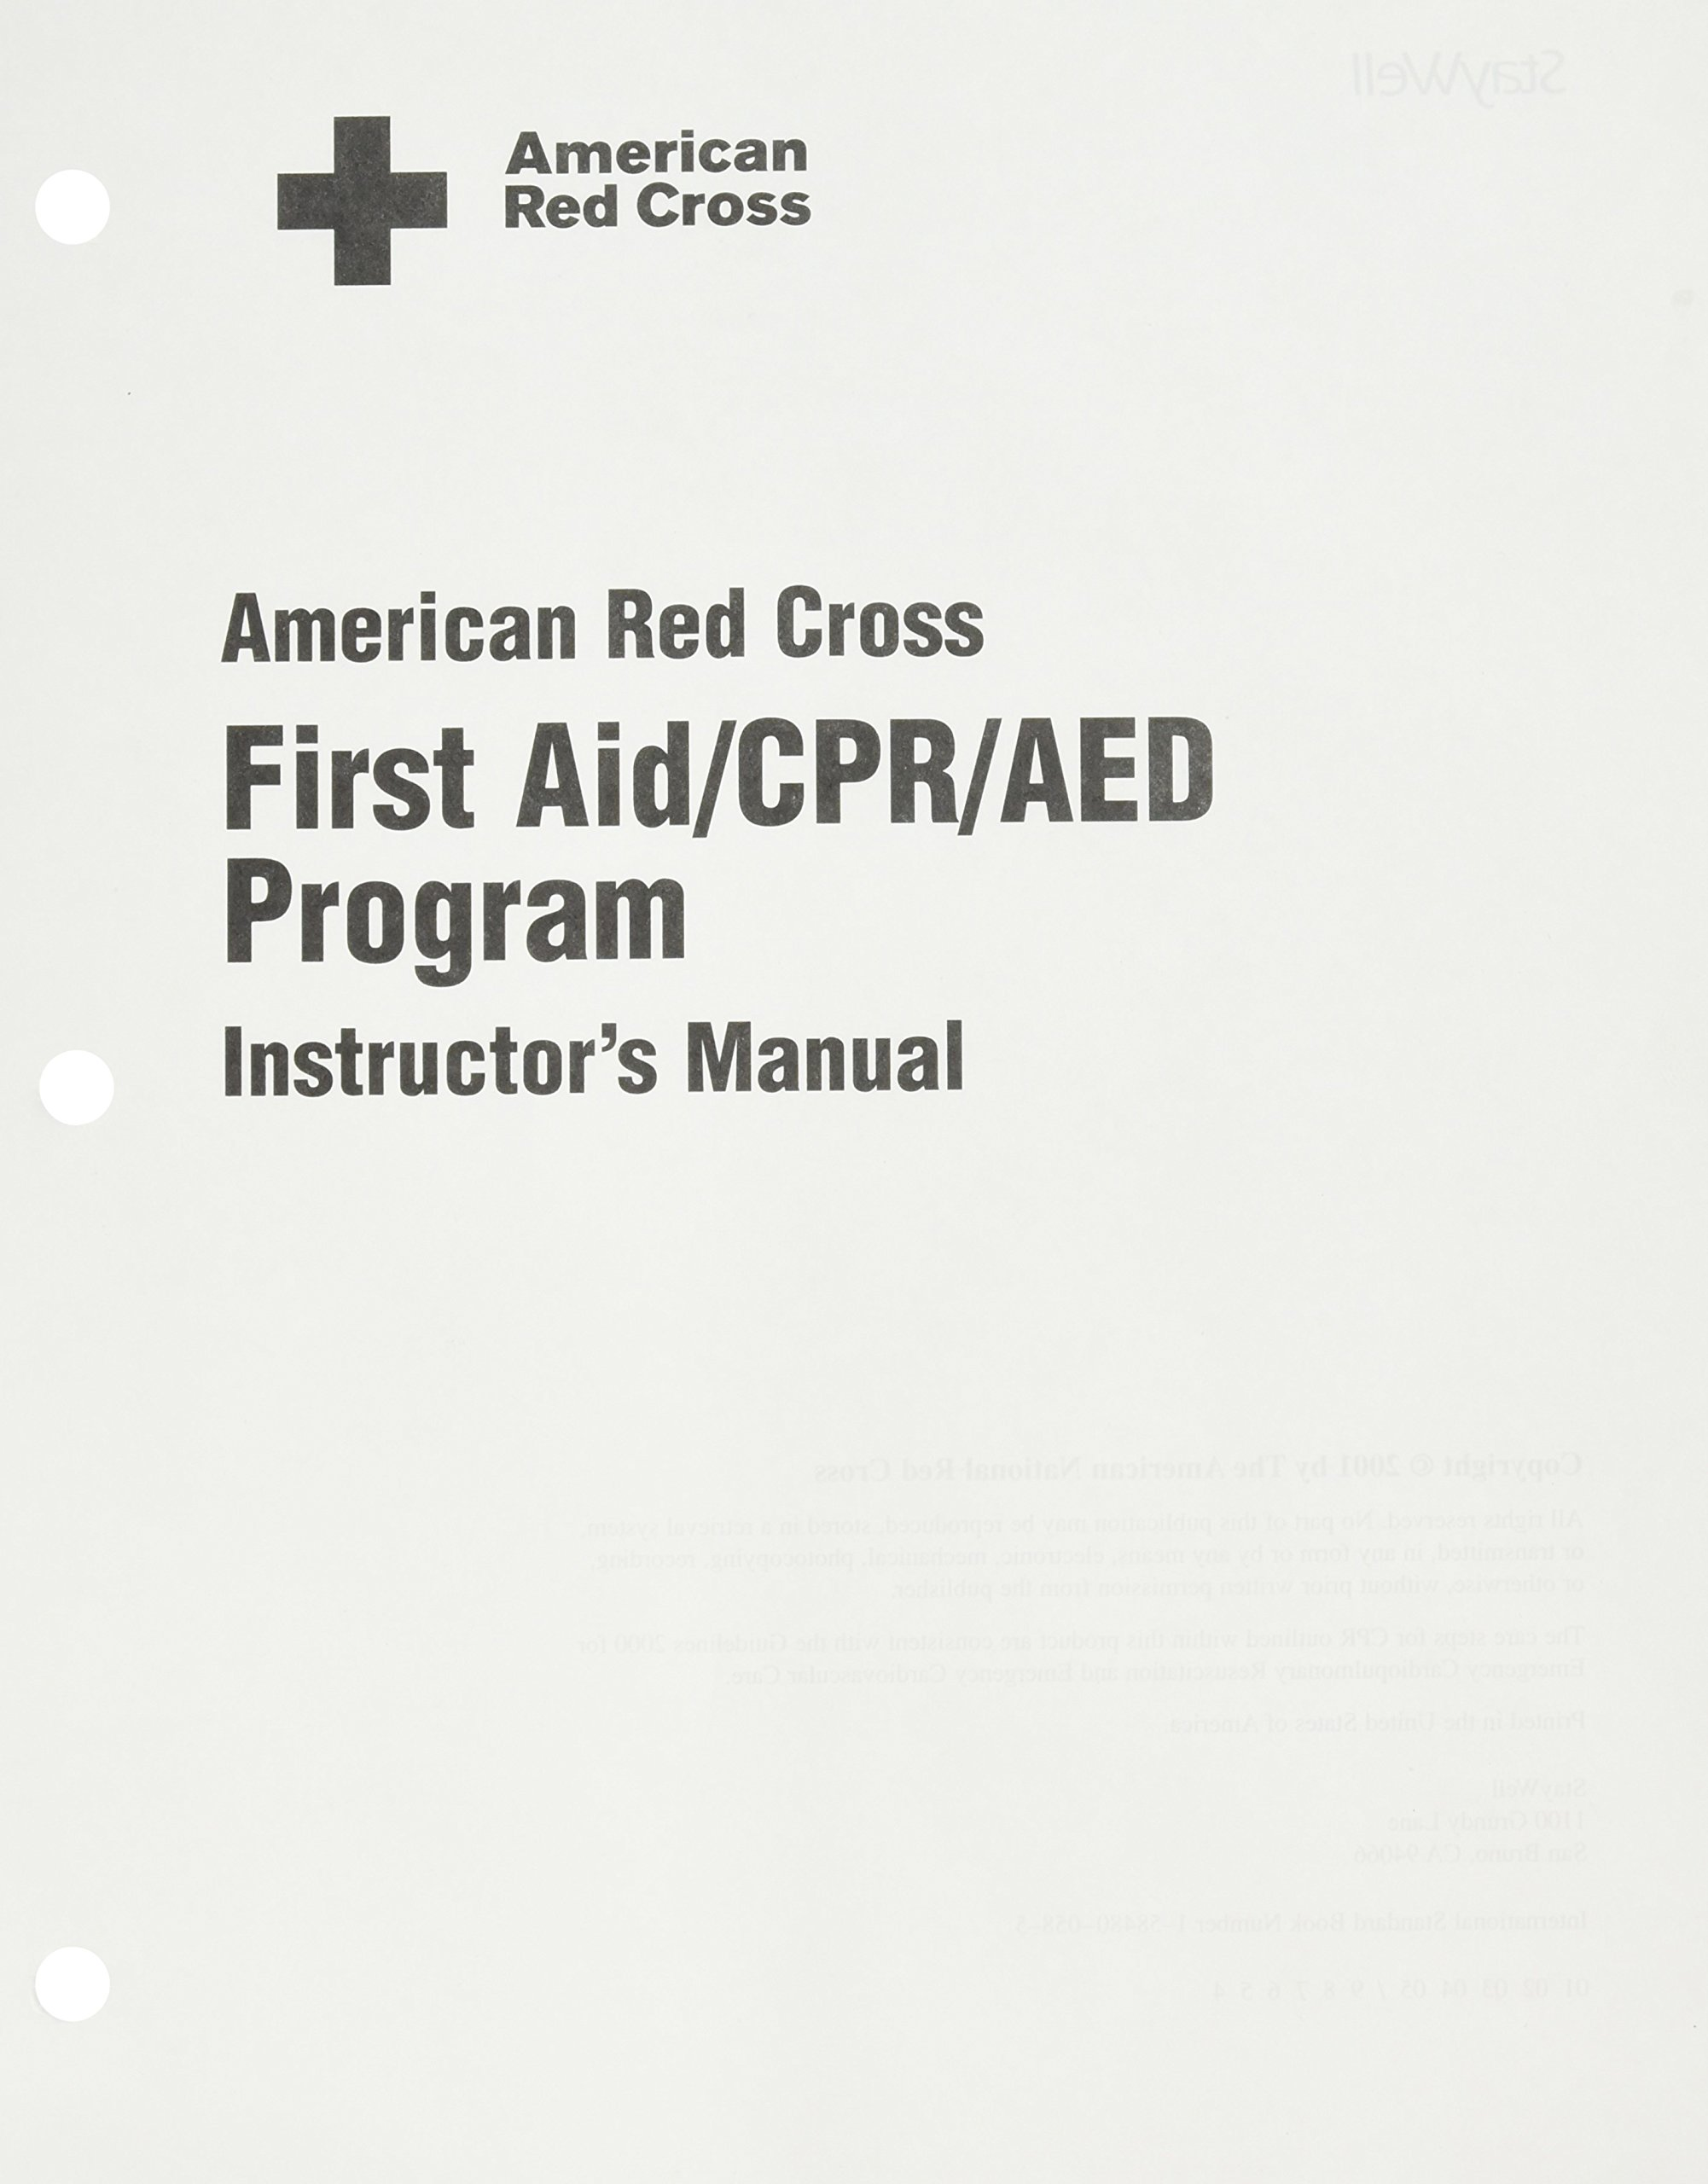 First aid cpr aed program instructors manual american red first aid cpr aed program instructors manual american red cross american red cross 9781584800583 amazon books xflitez Image collections